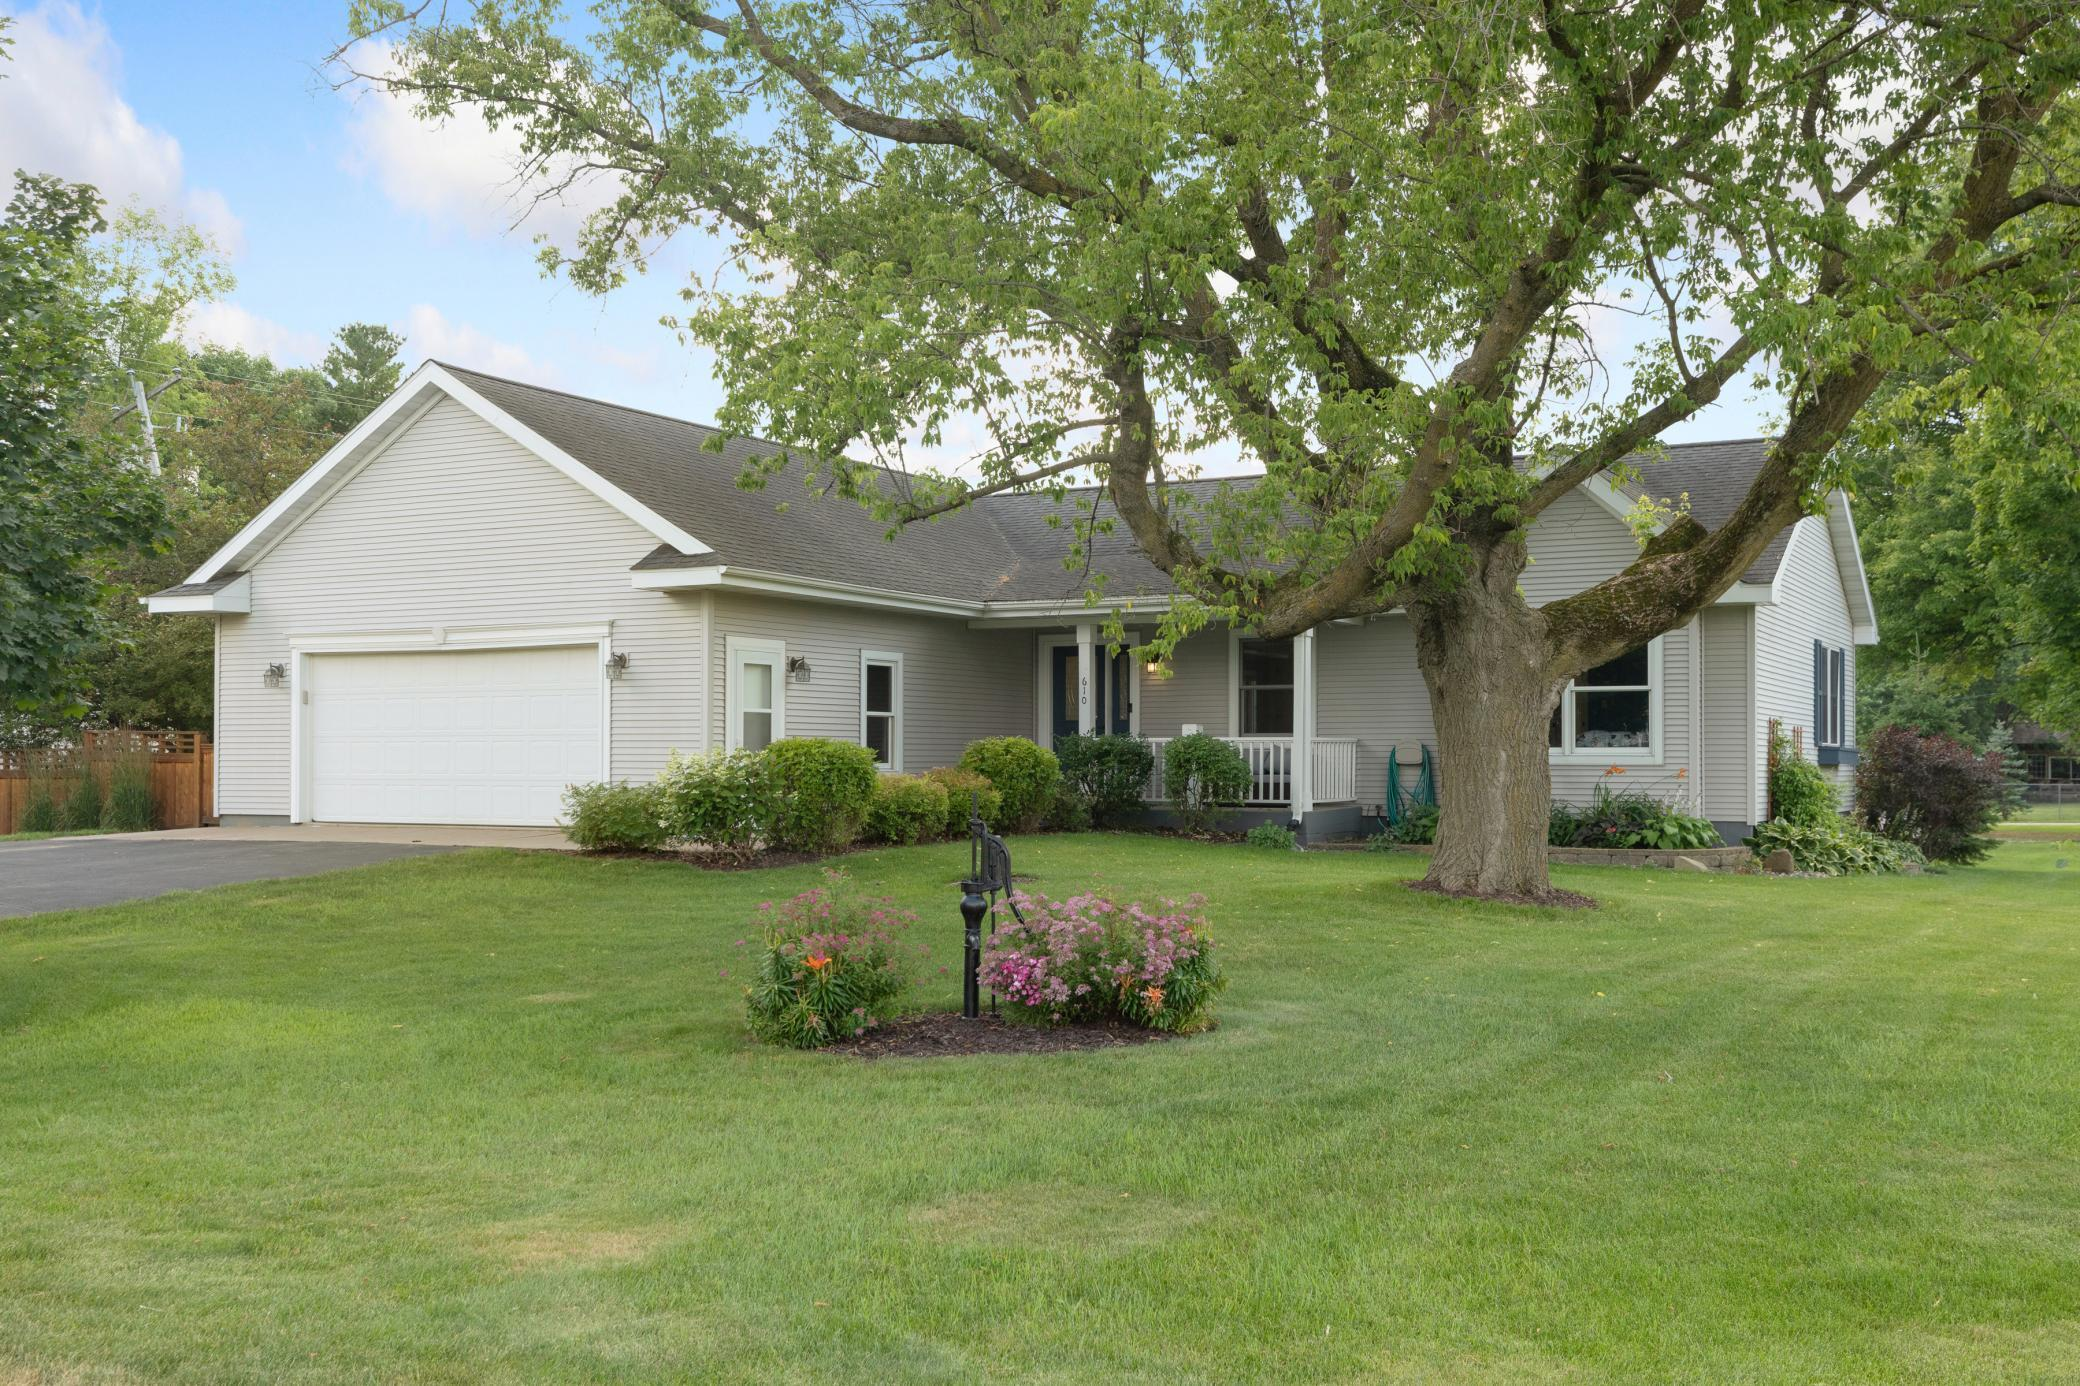 610 Ash Property Photo - Downing, WI real estate listing